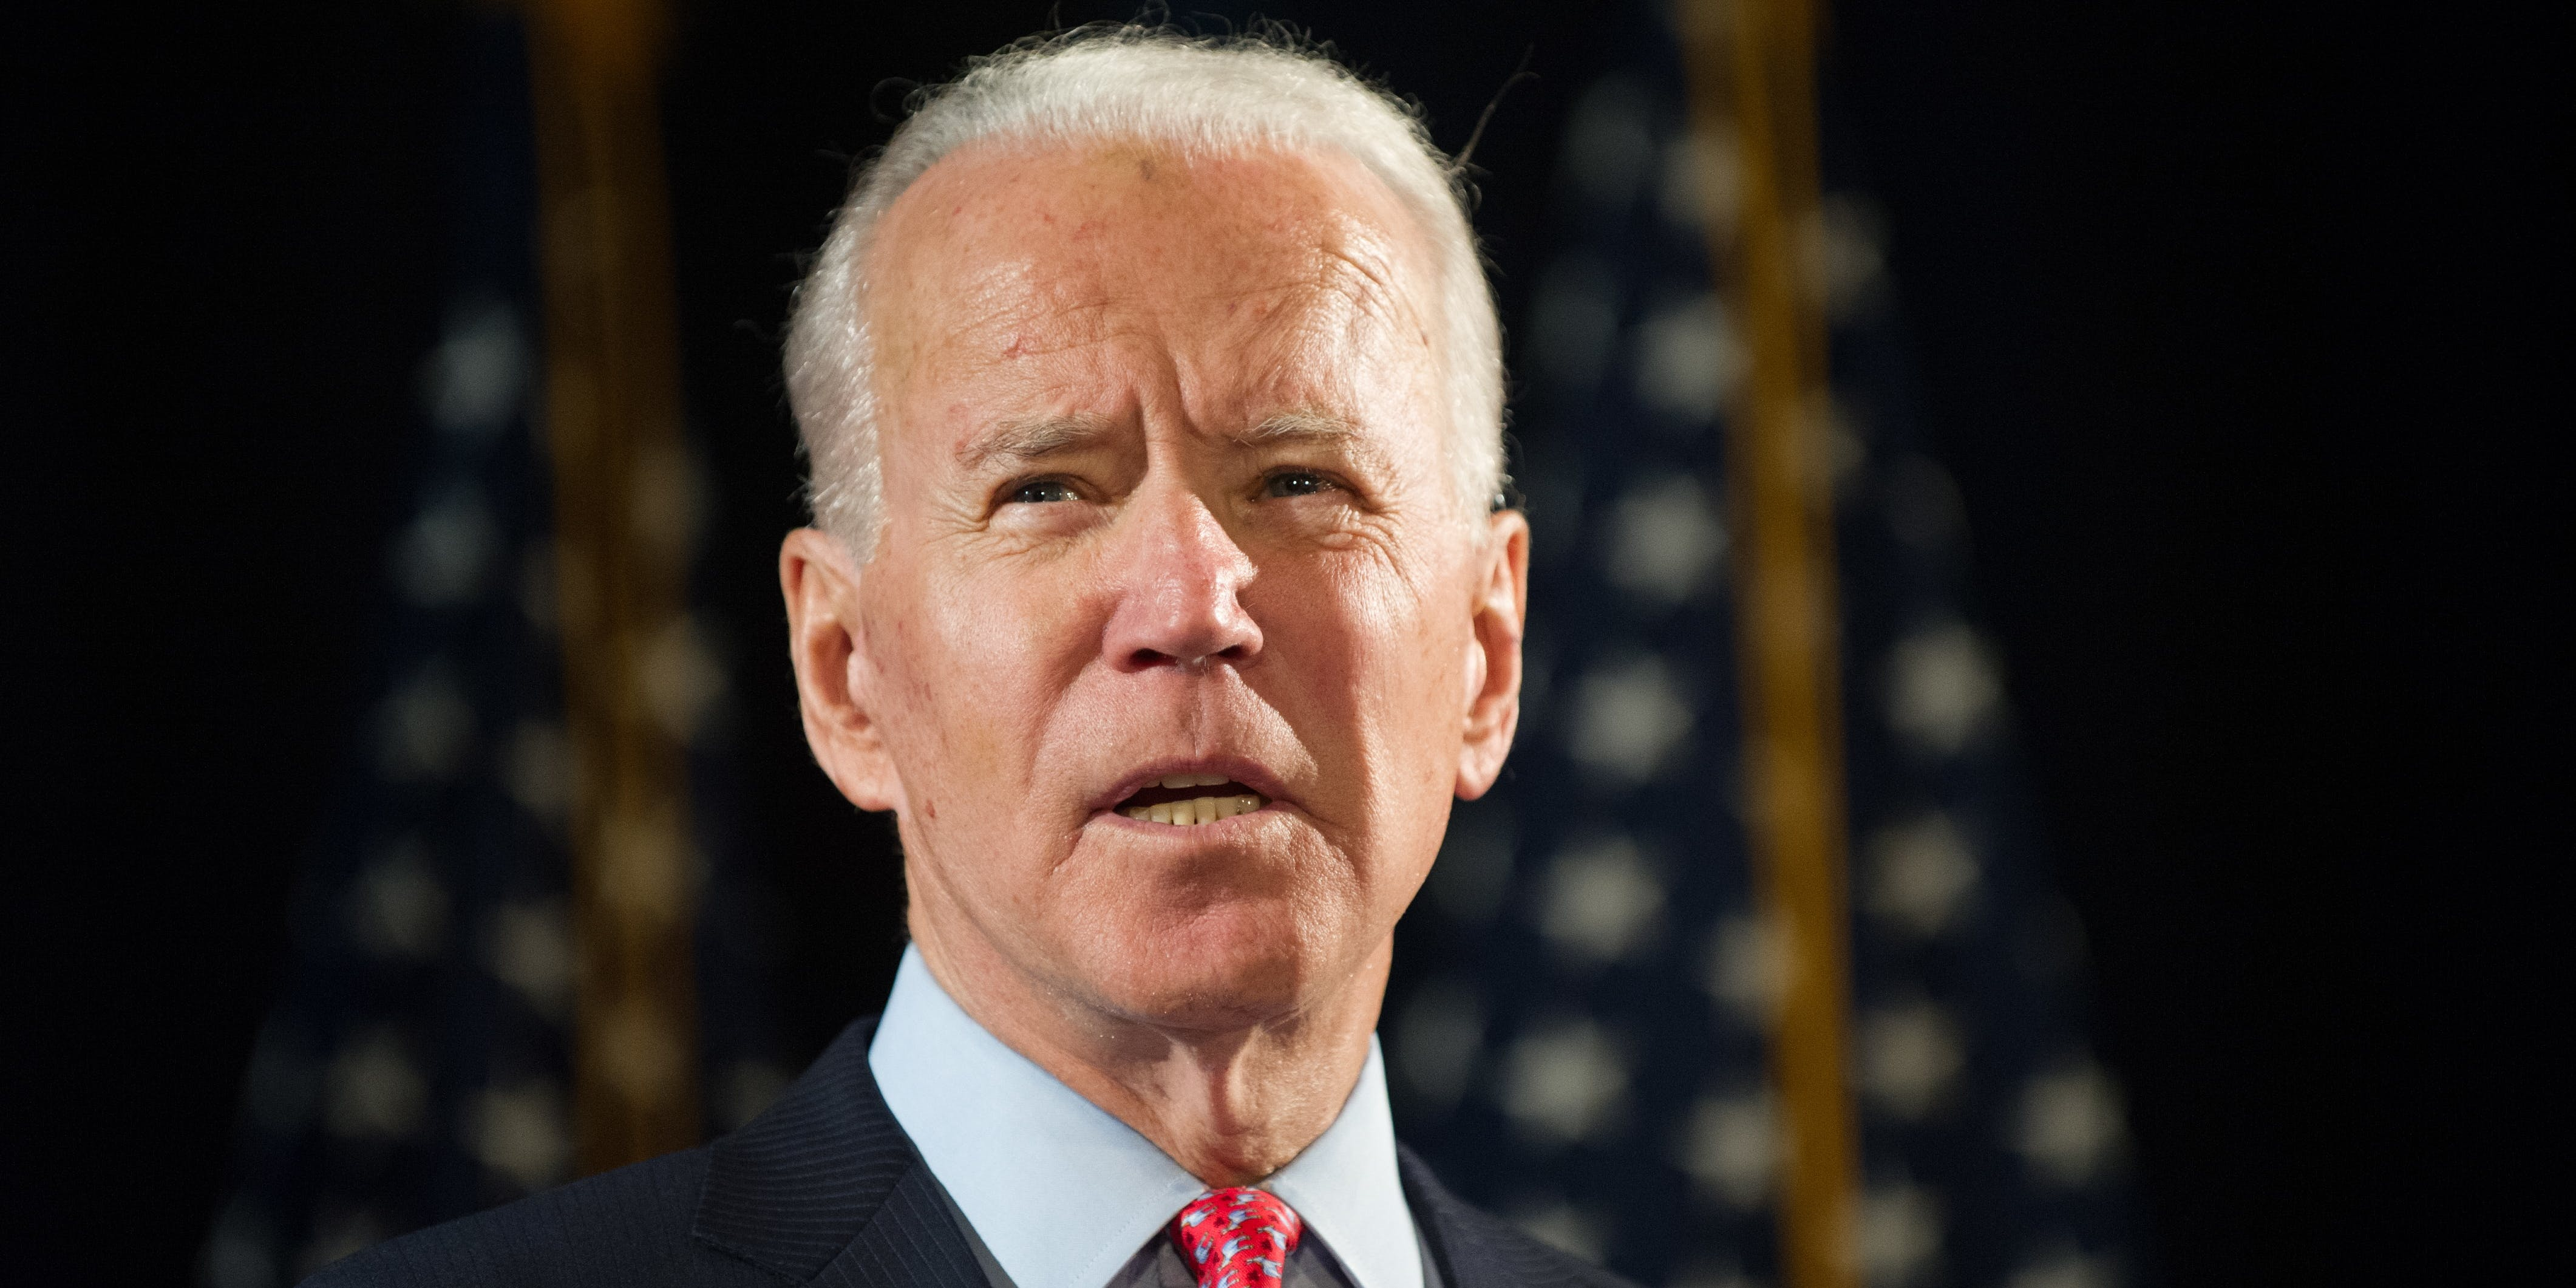 Third time the charm for Joe Biden : now he has an election to win and a country to save